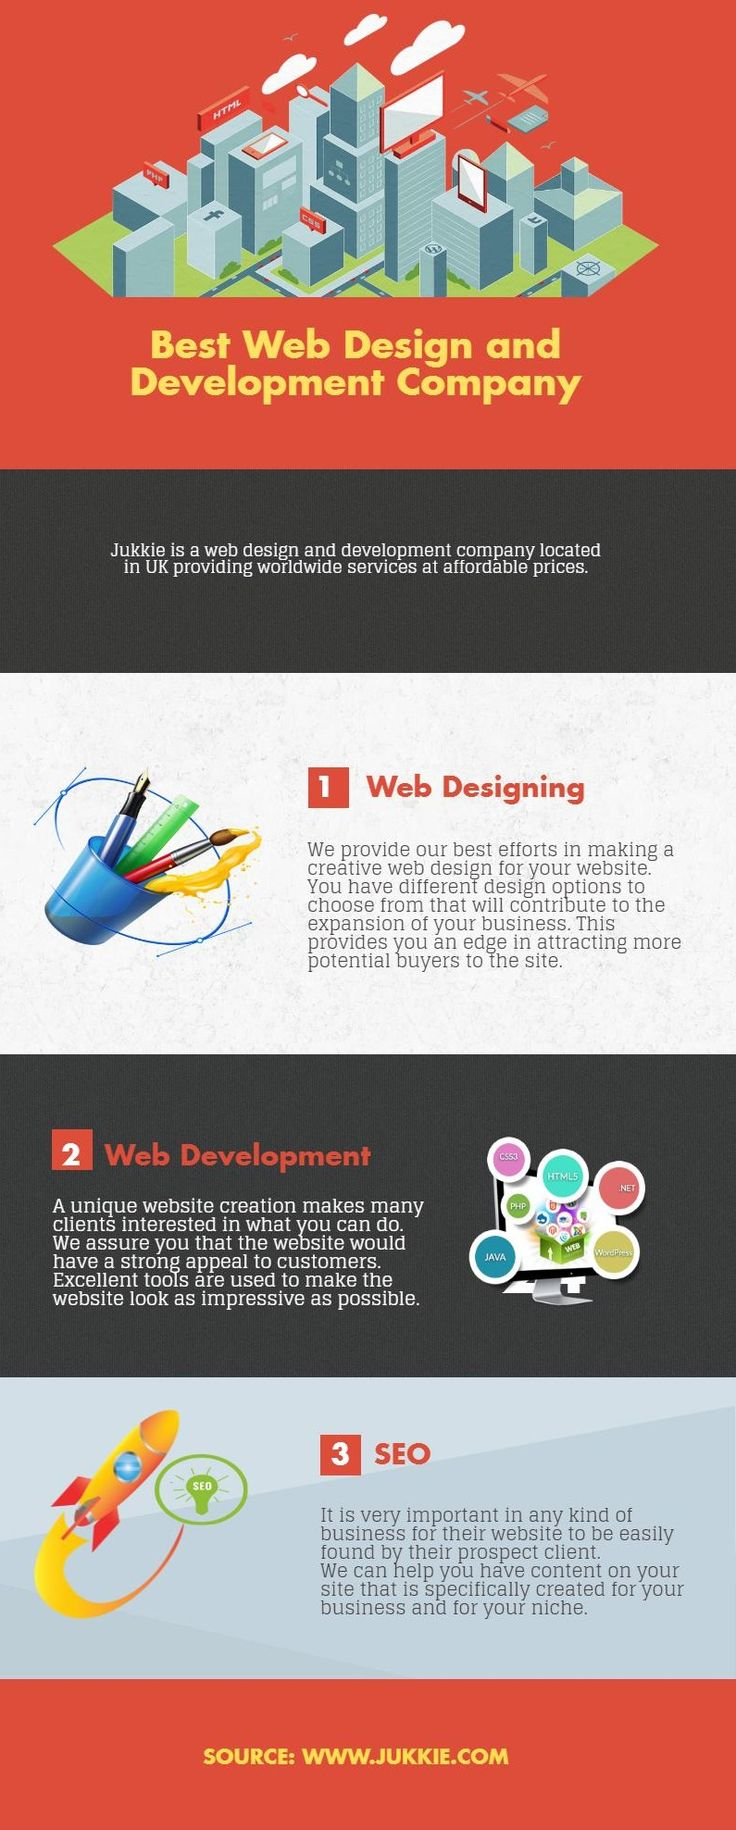 Get service from best web design and development company offers creative and high quality solutions in UK. Call us today at +44 20 3151 7830 or send a mail hello@jukkie.com!